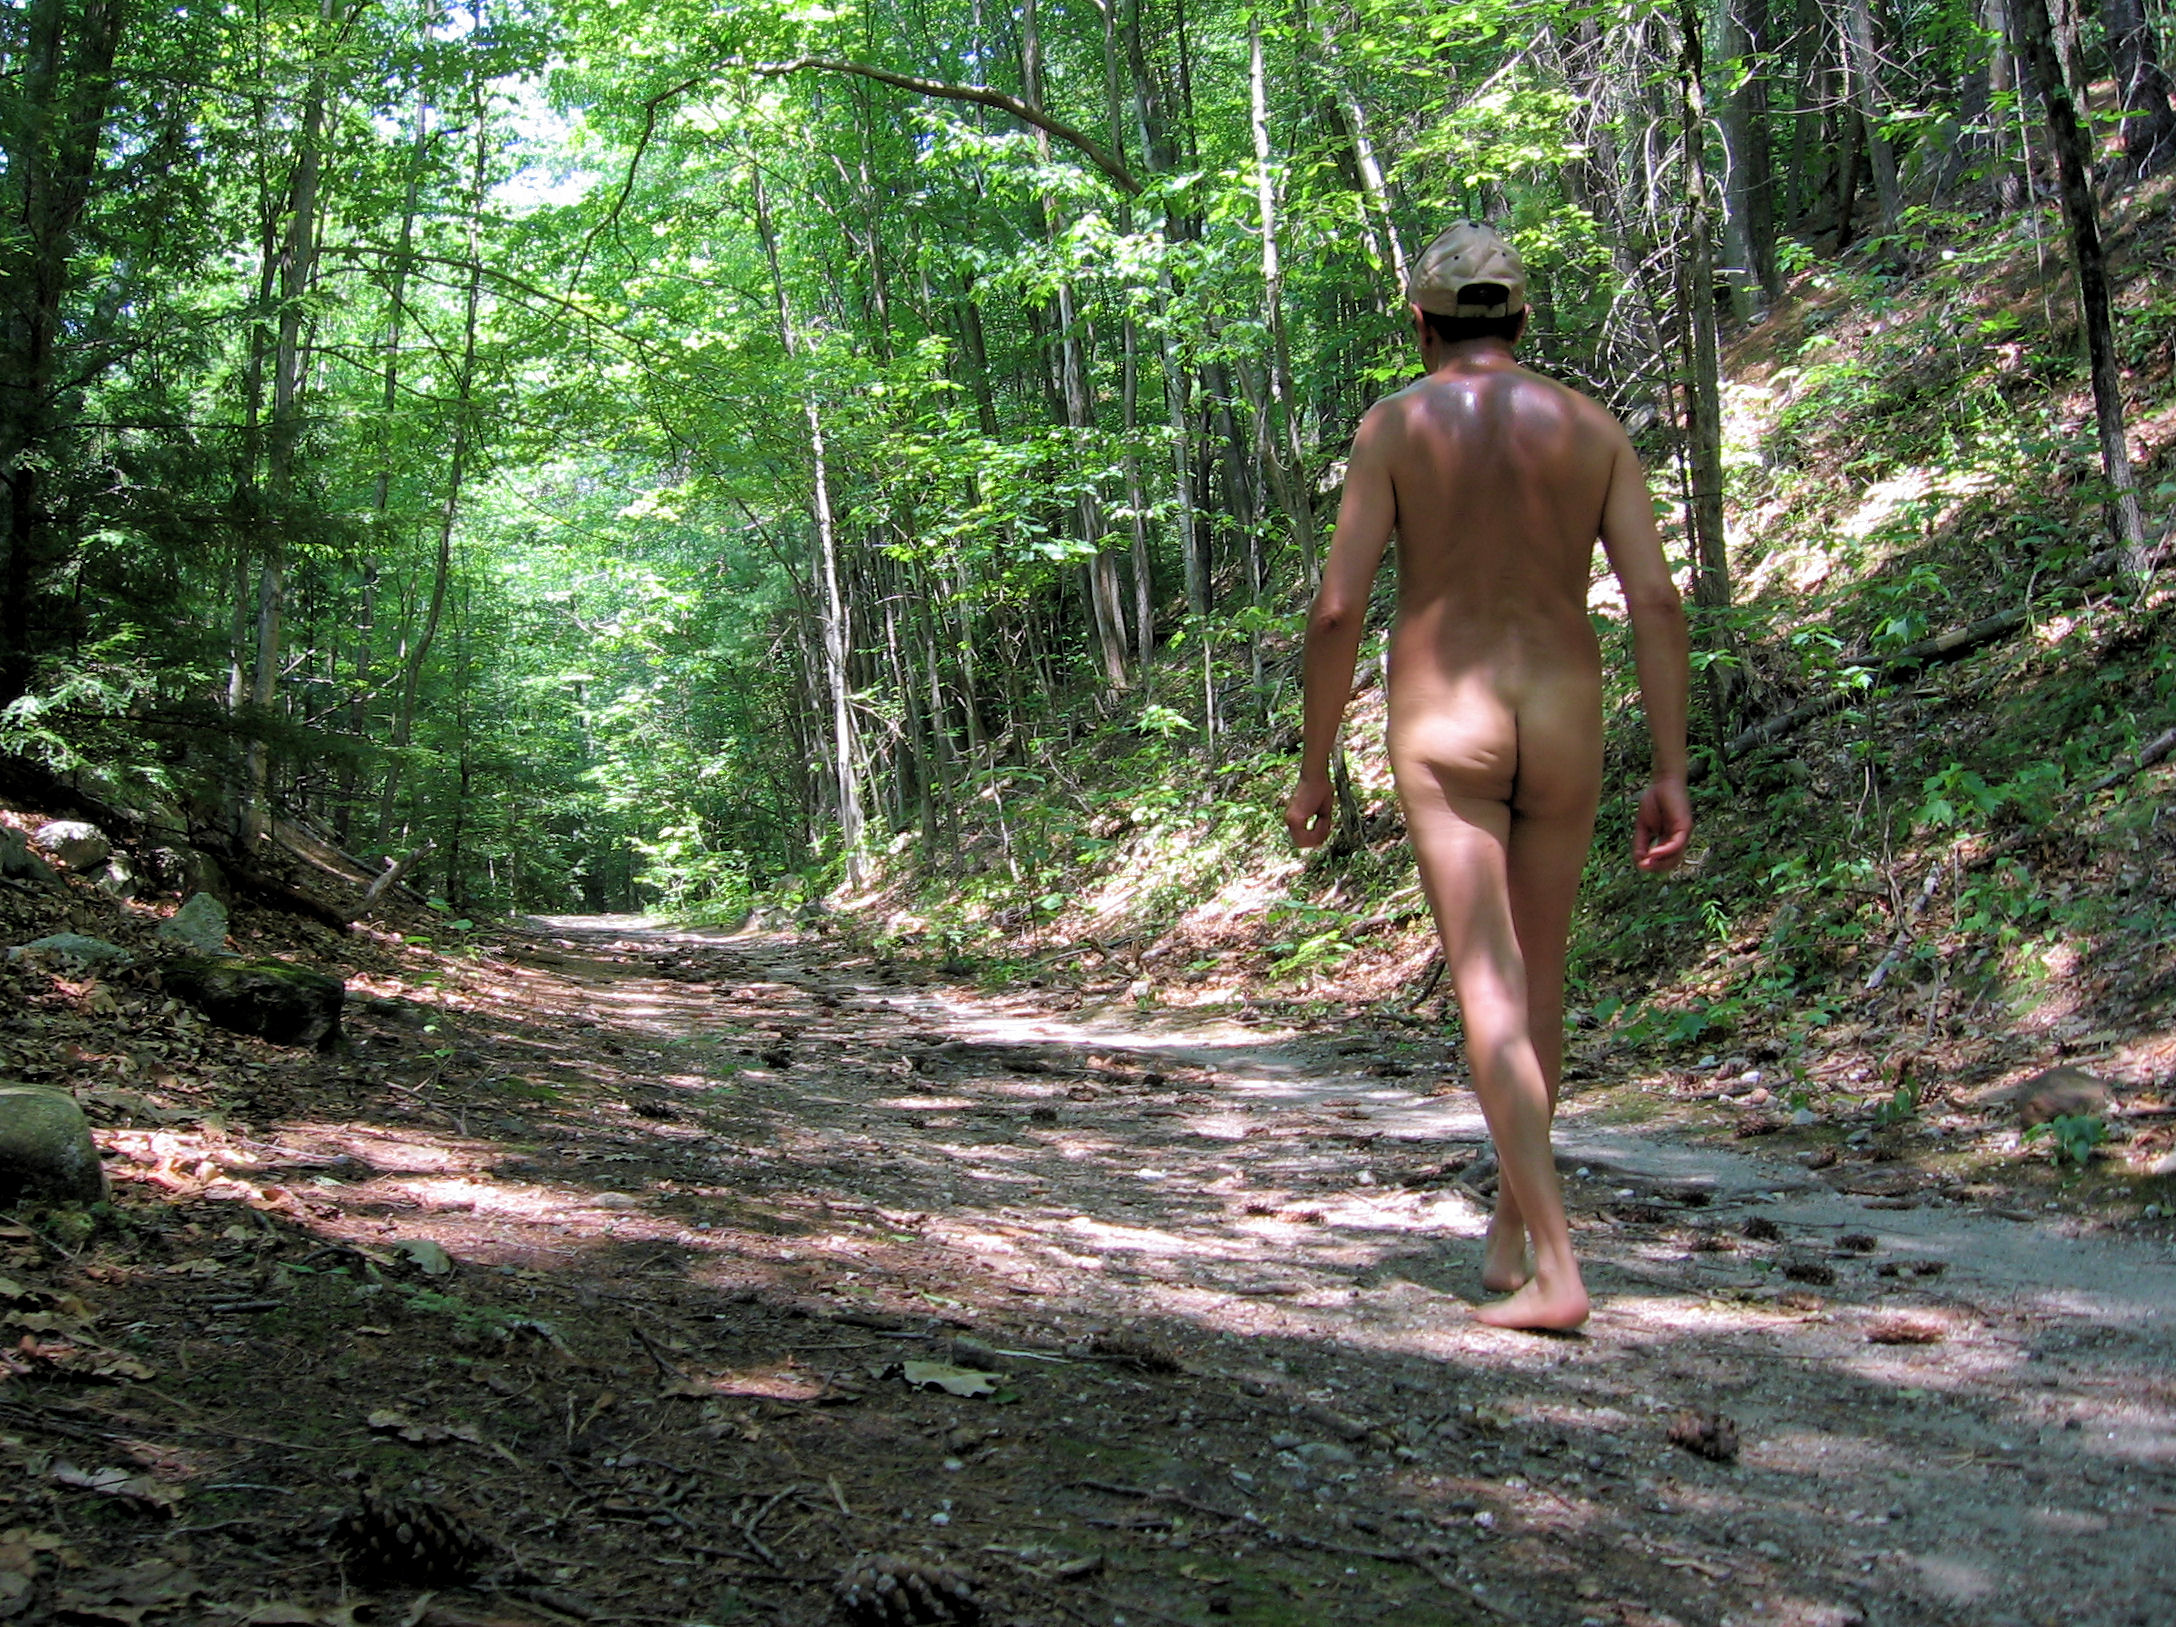 Naked in the Woods - Free Porn Videos - YouPorn